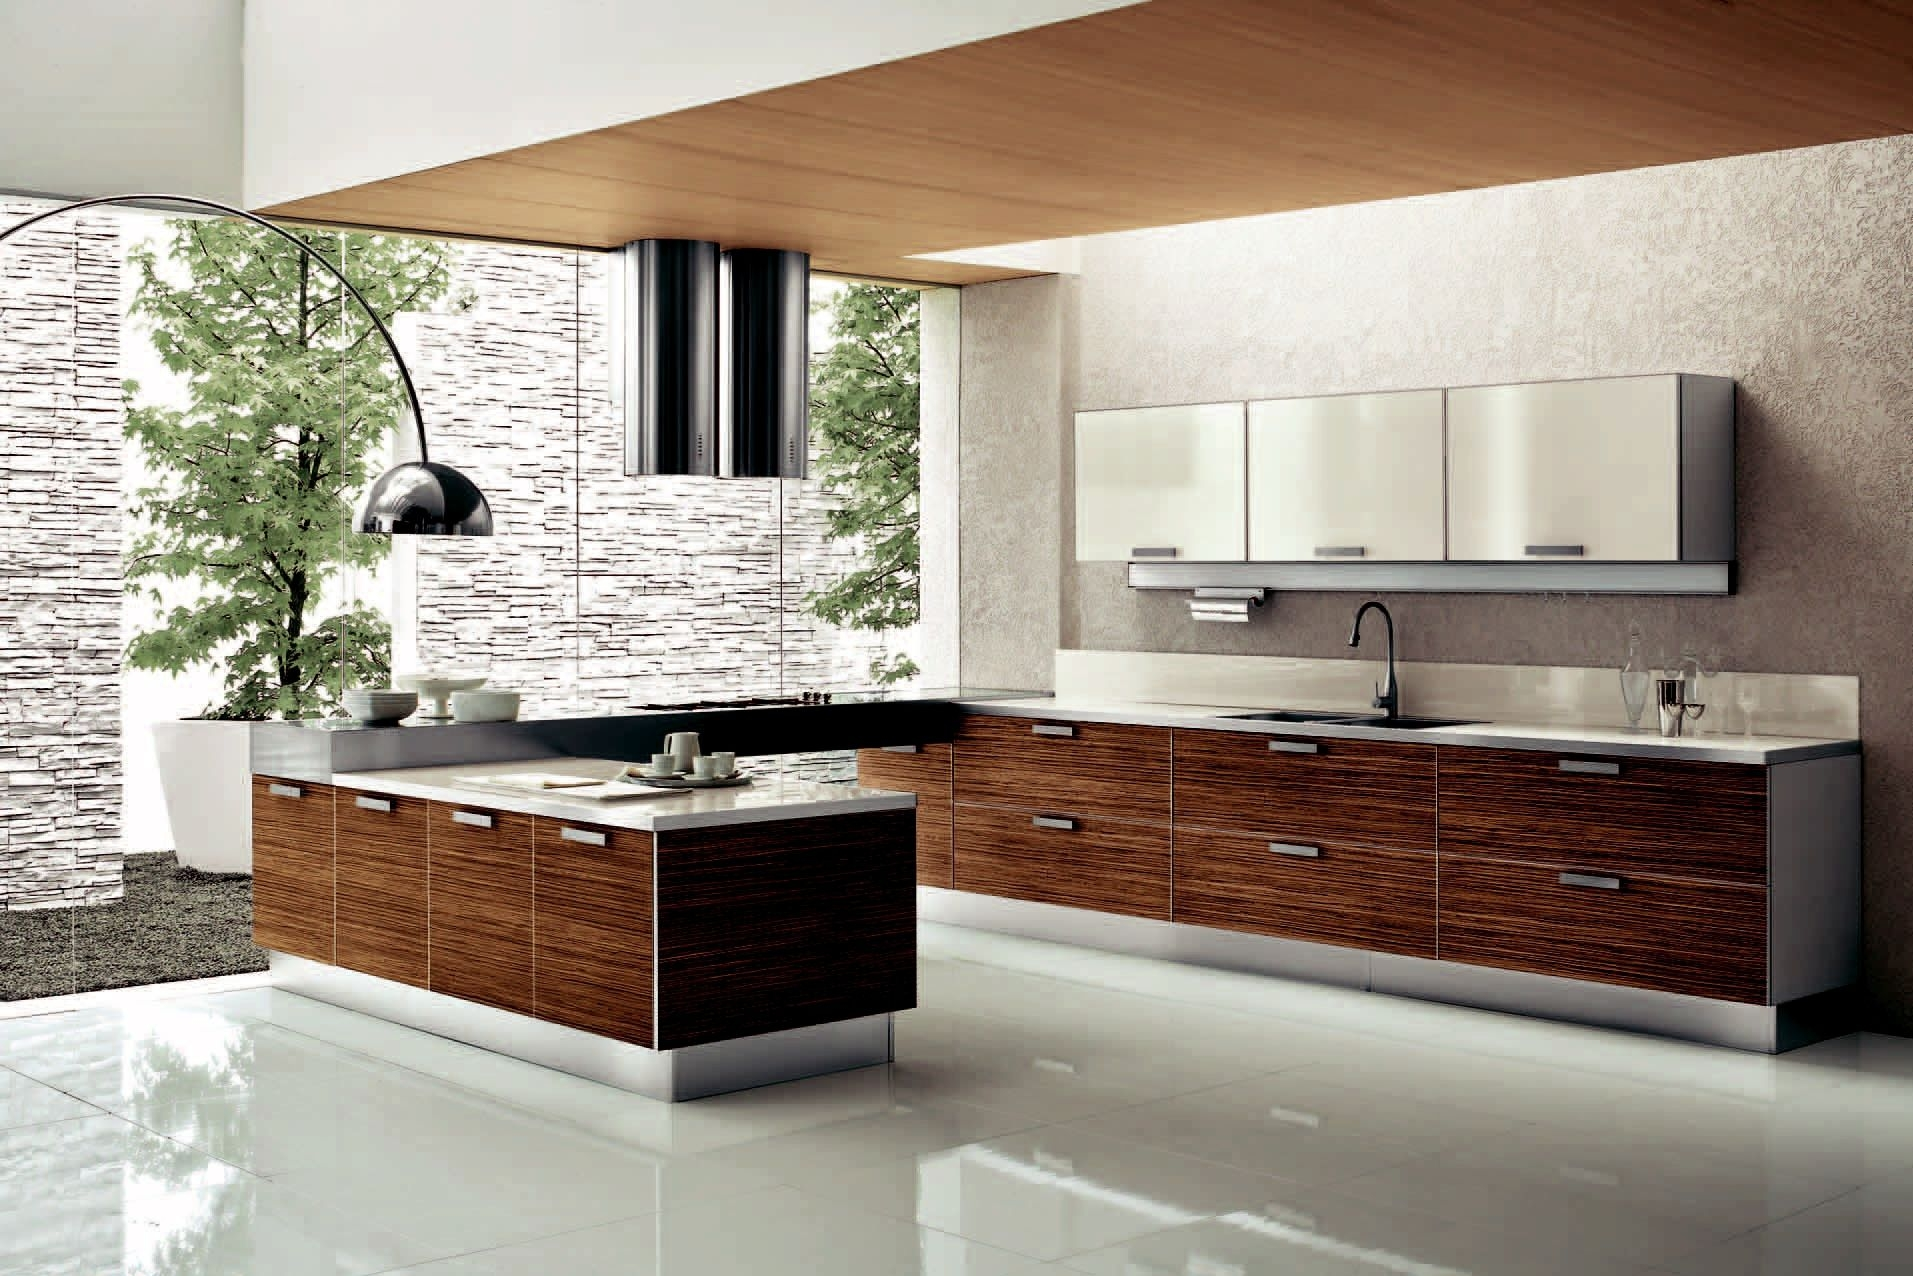 Beyond Kitchens Affordable Kitchen Cupboards Cape Town  Kitchens Cape Town  Built In Cupboards